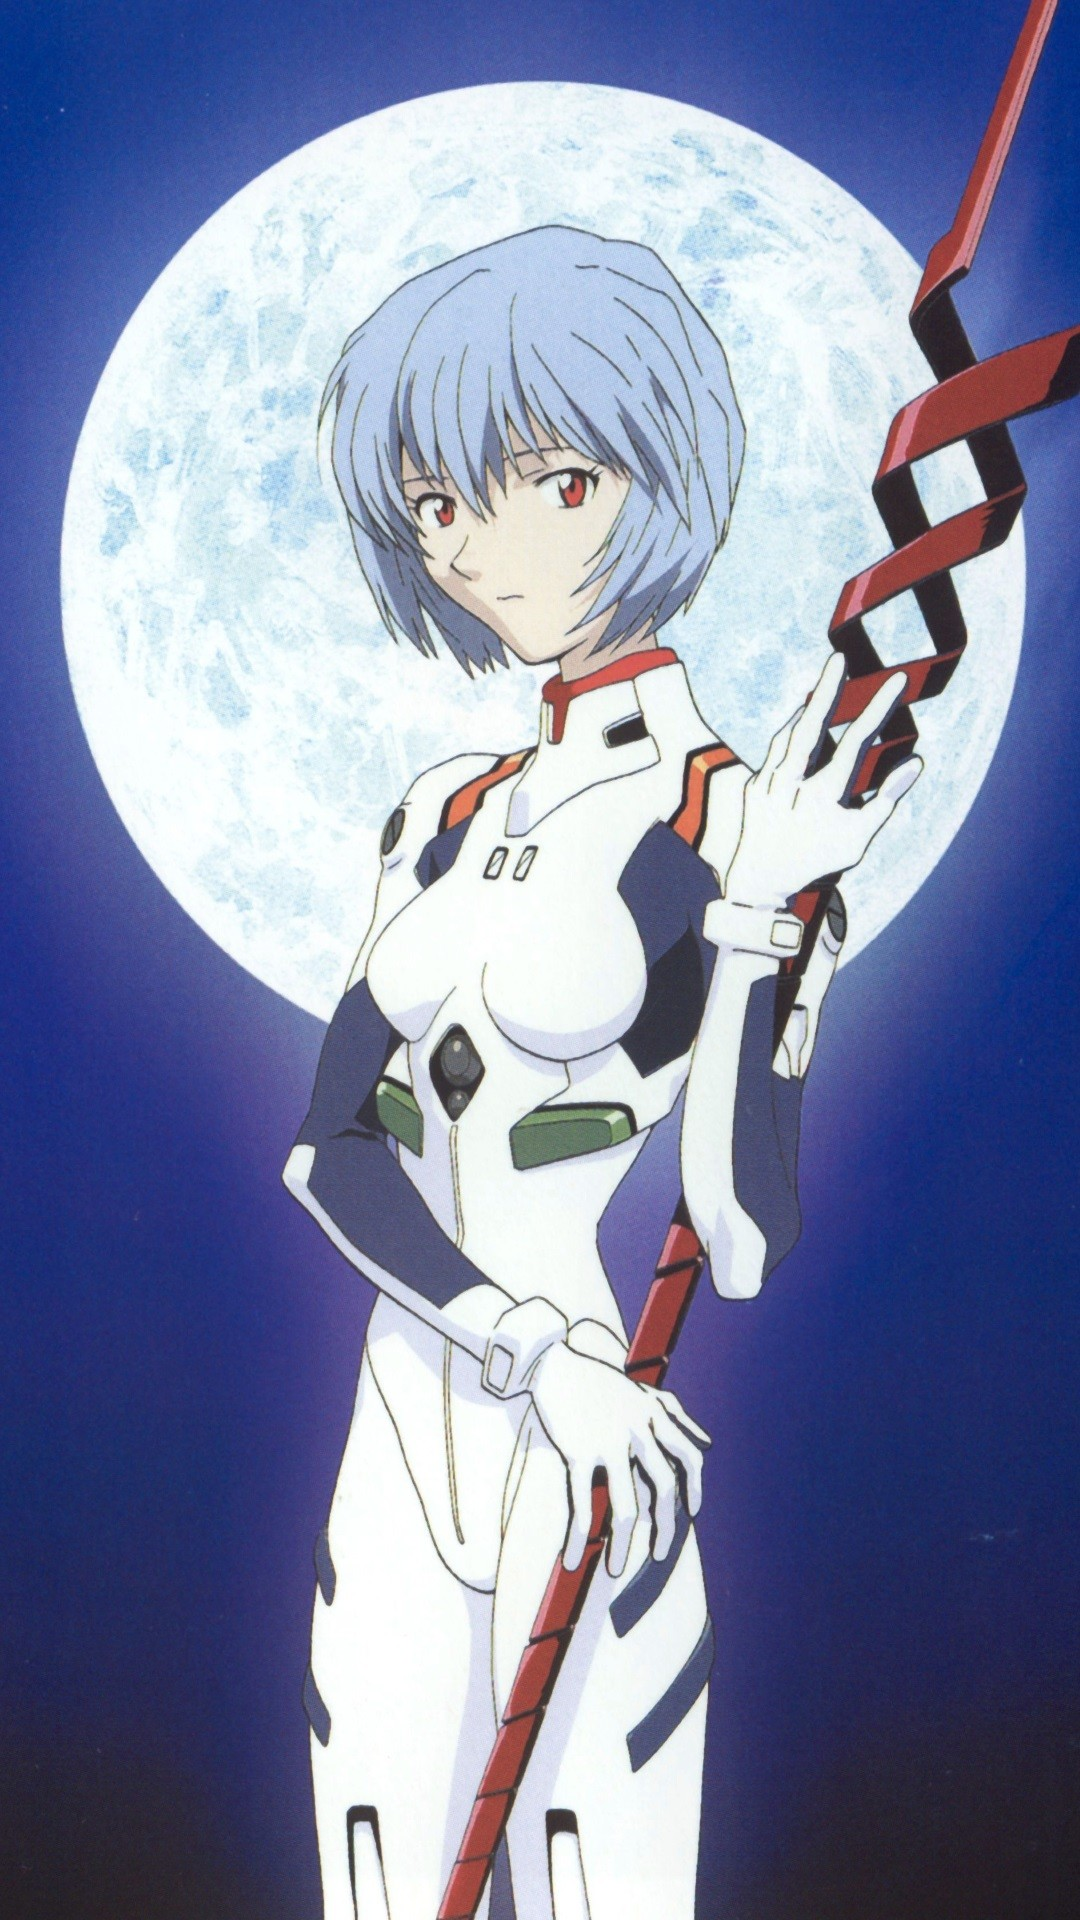 1080x1920 Neon Genesis Evangelion Rei Ayanami.iPhone 6 Plus wallpaper